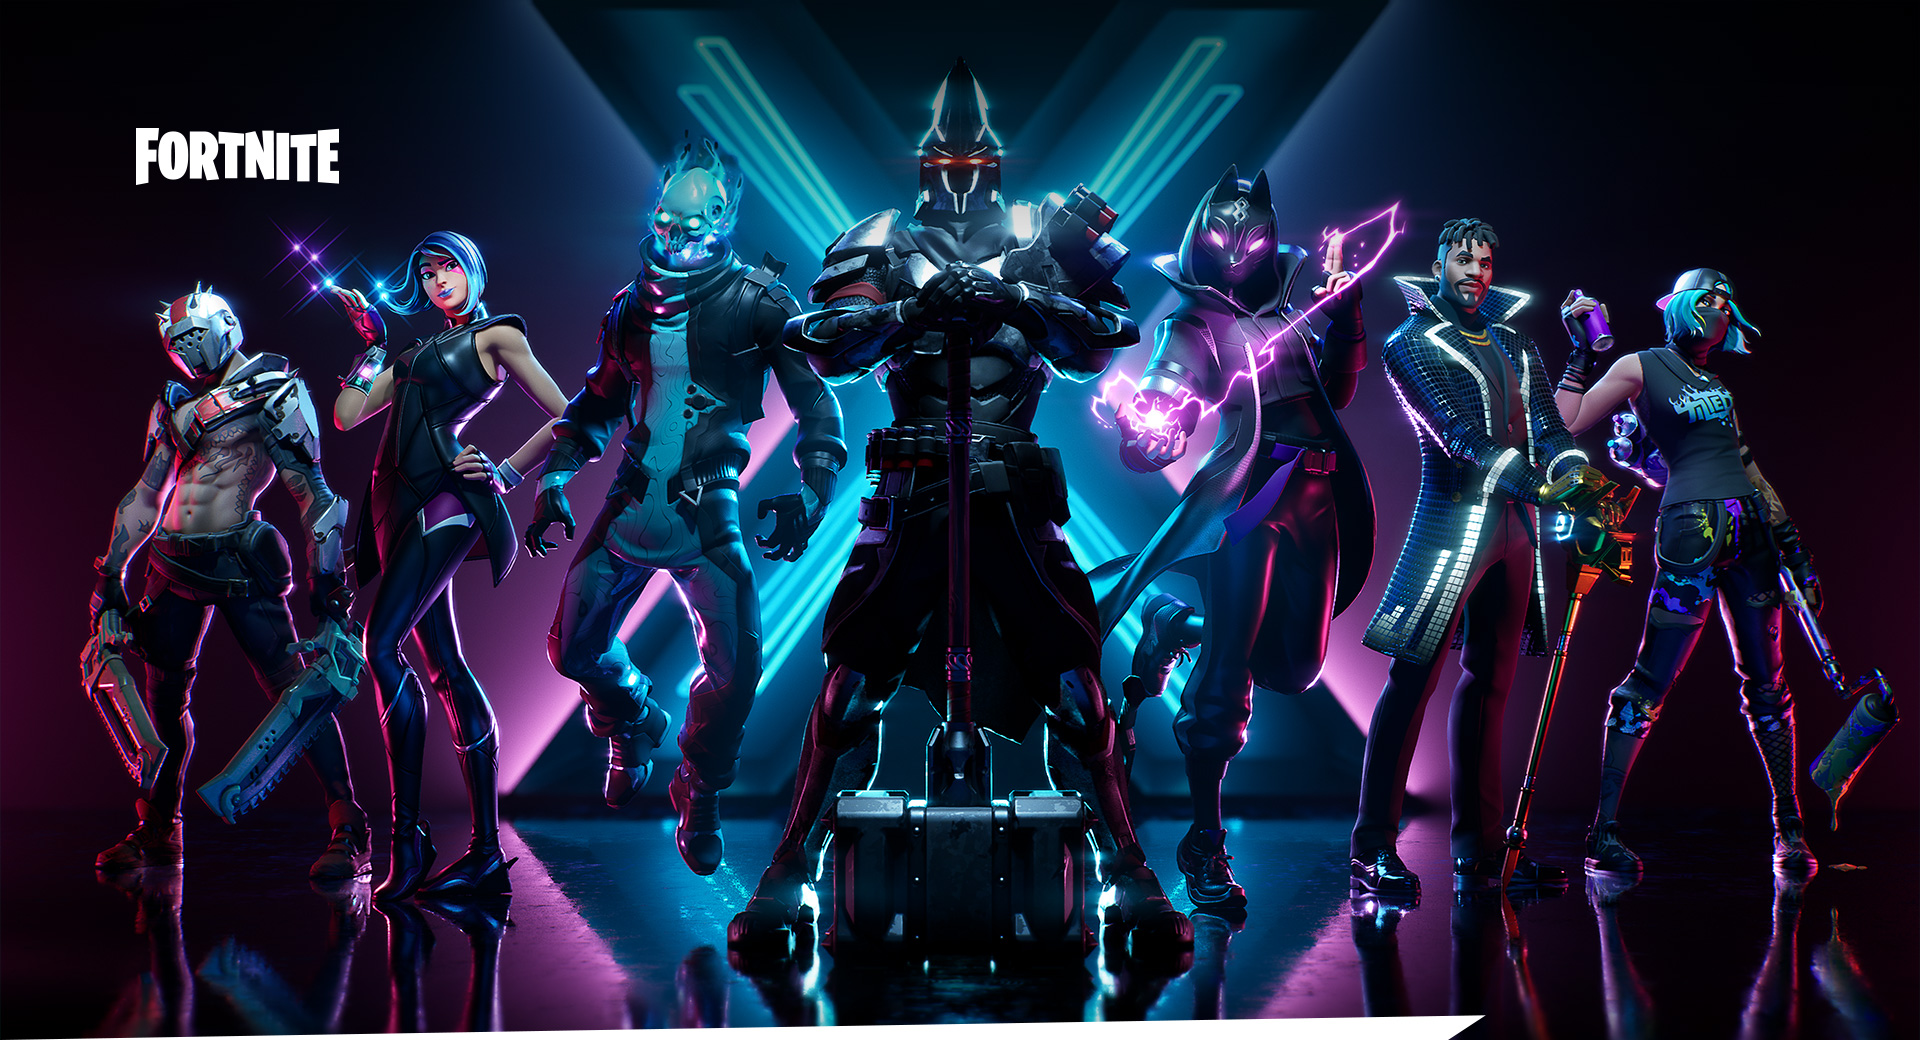 Fortnite, vista frontal de siete personajes de Fortnite posando